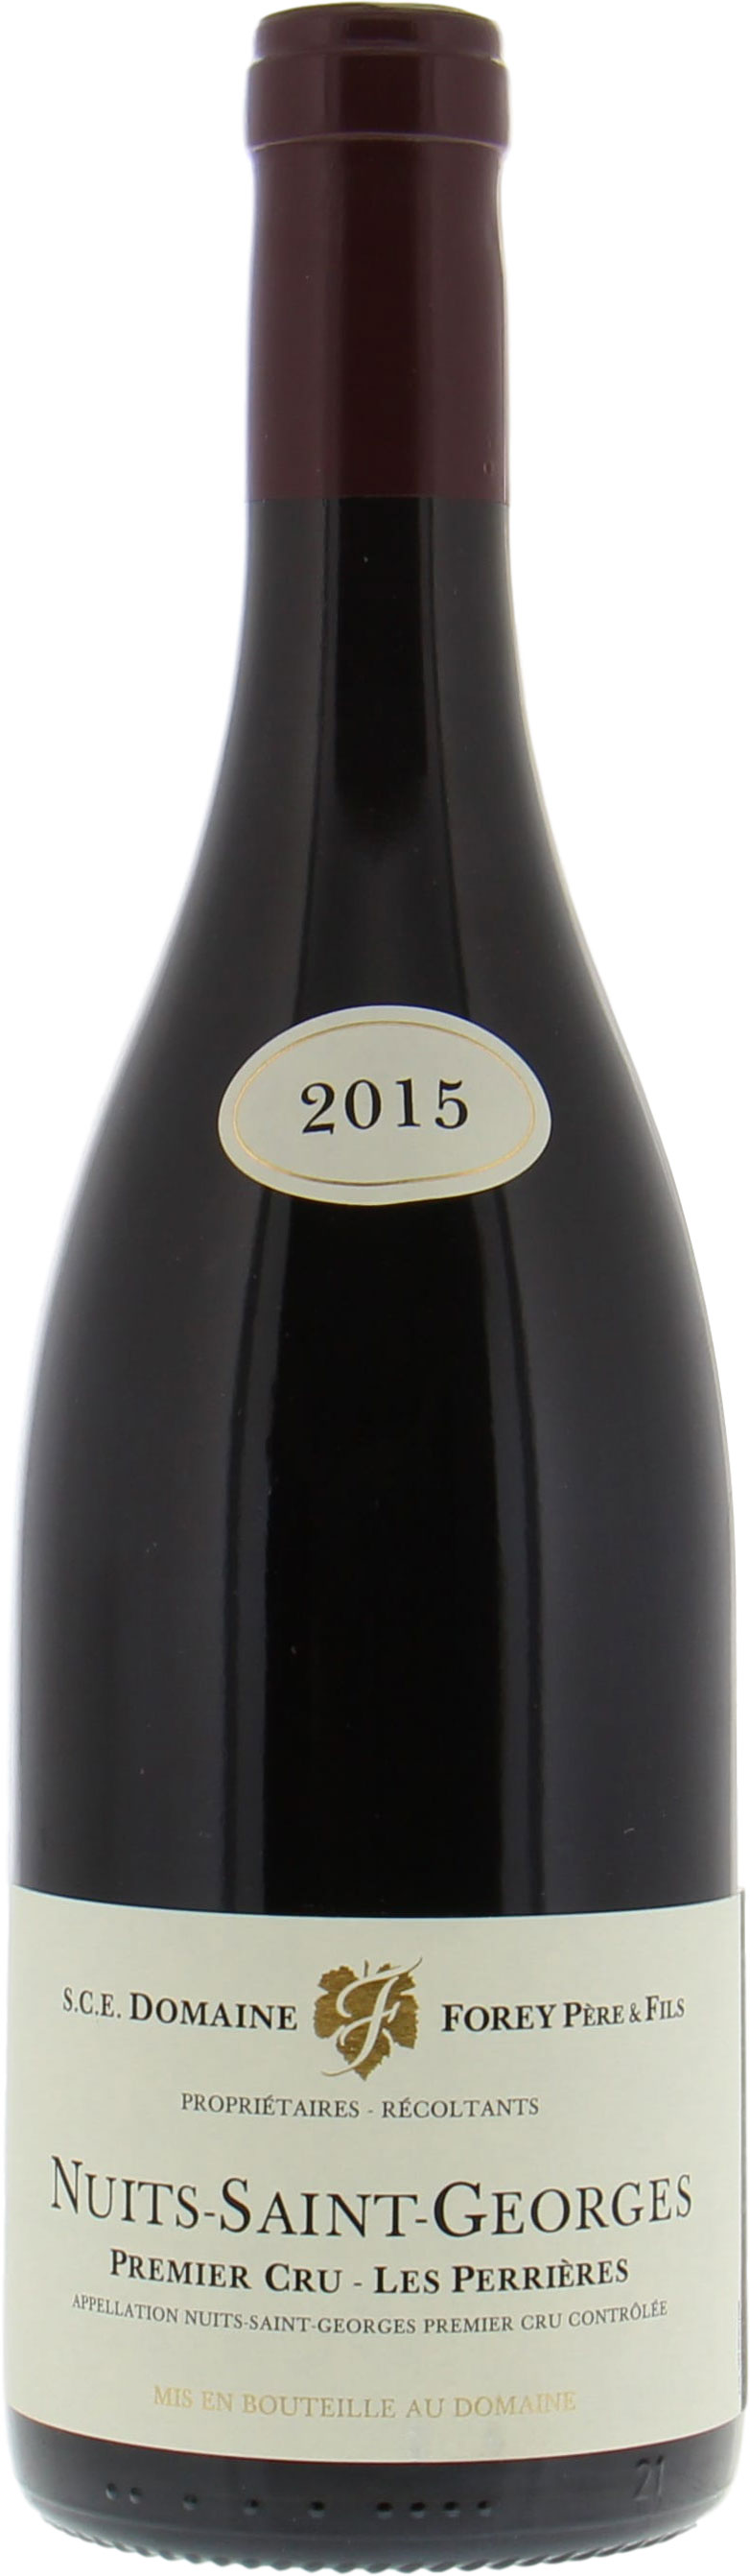 Domaine Forey Pere & Fils - Nuits St. Georges 1er Cru Perrieres 2015